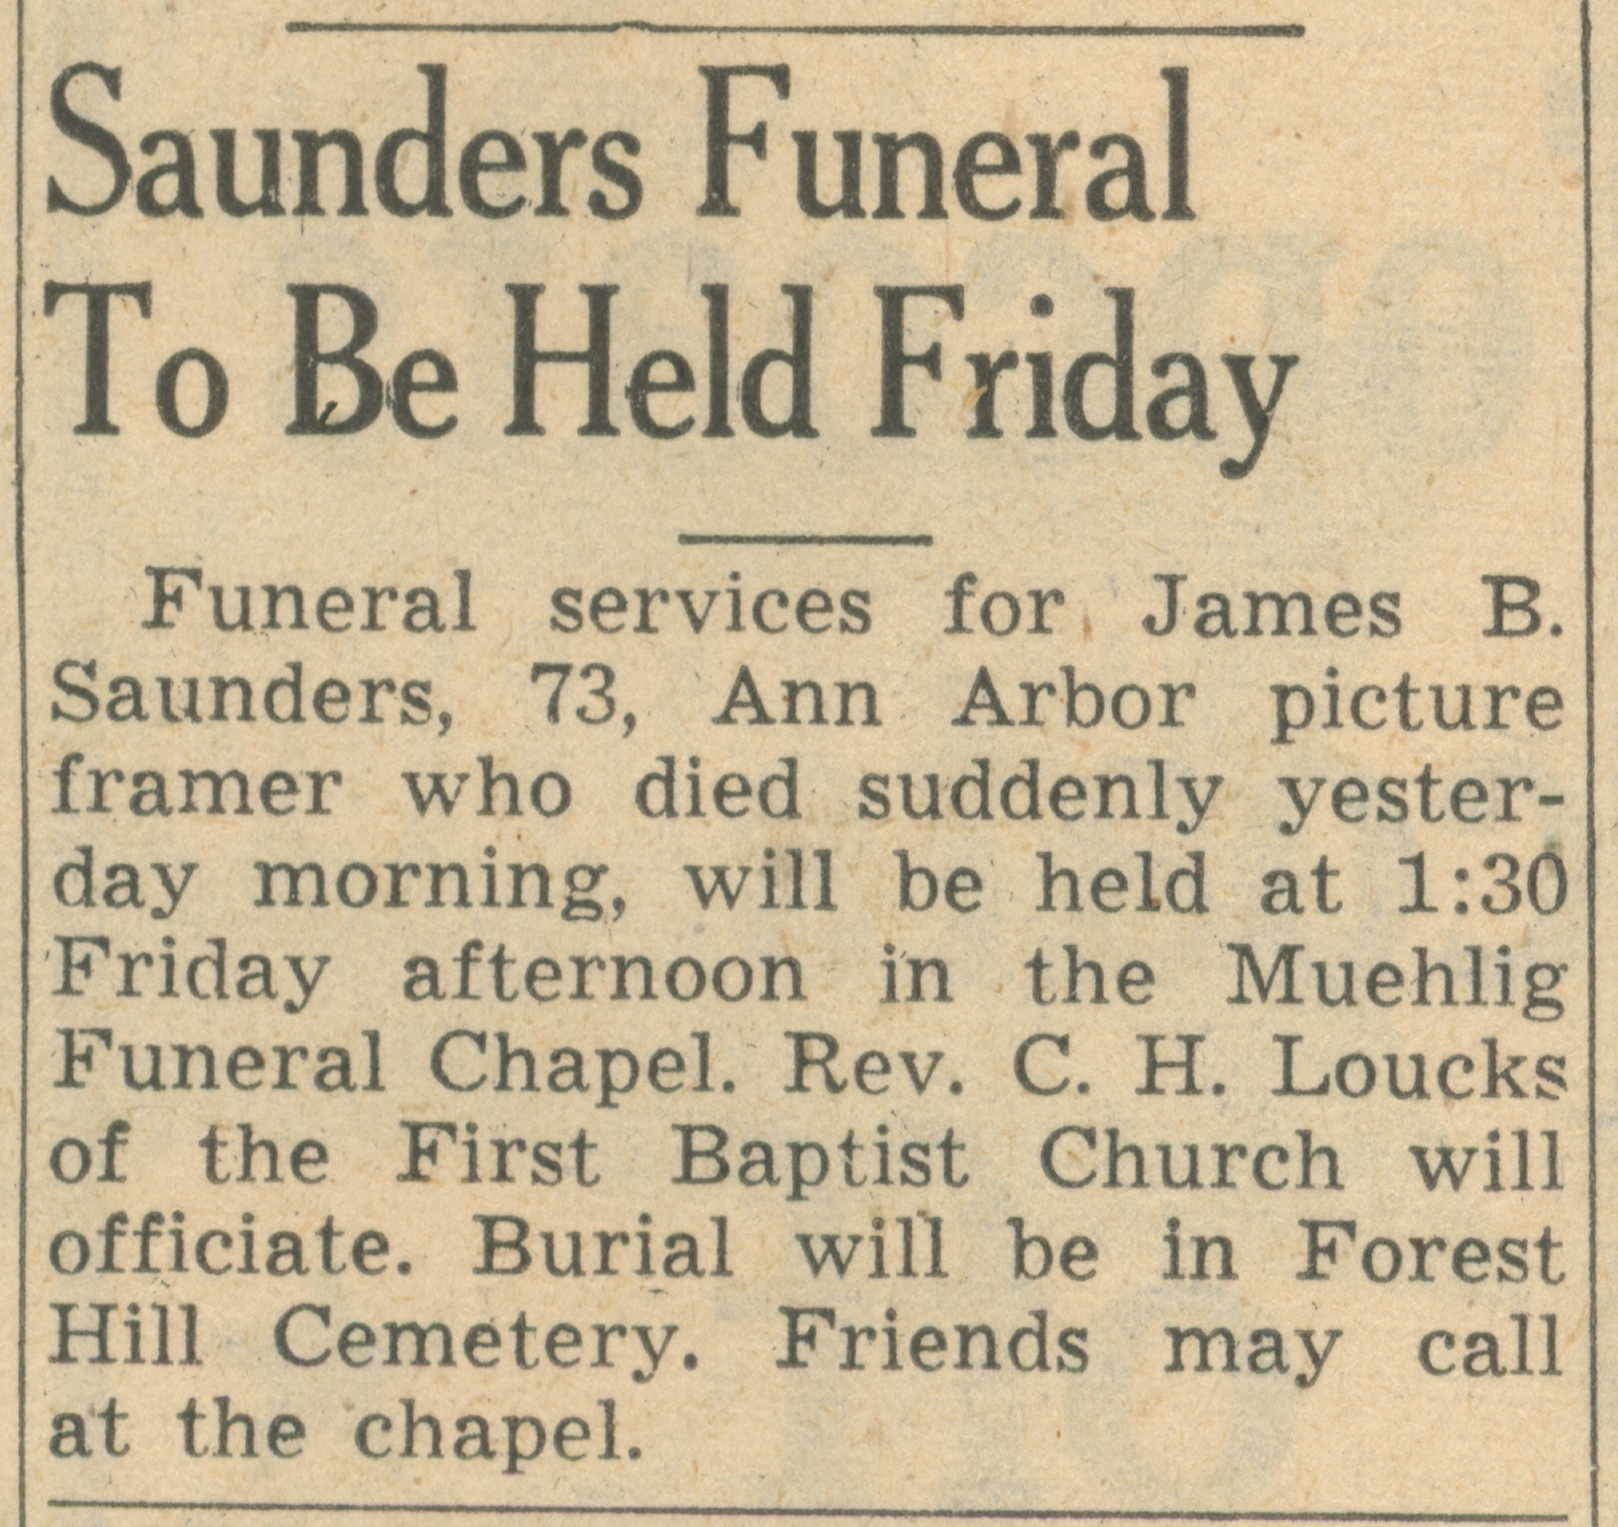 Saunders Funeral To Be Held Friday image